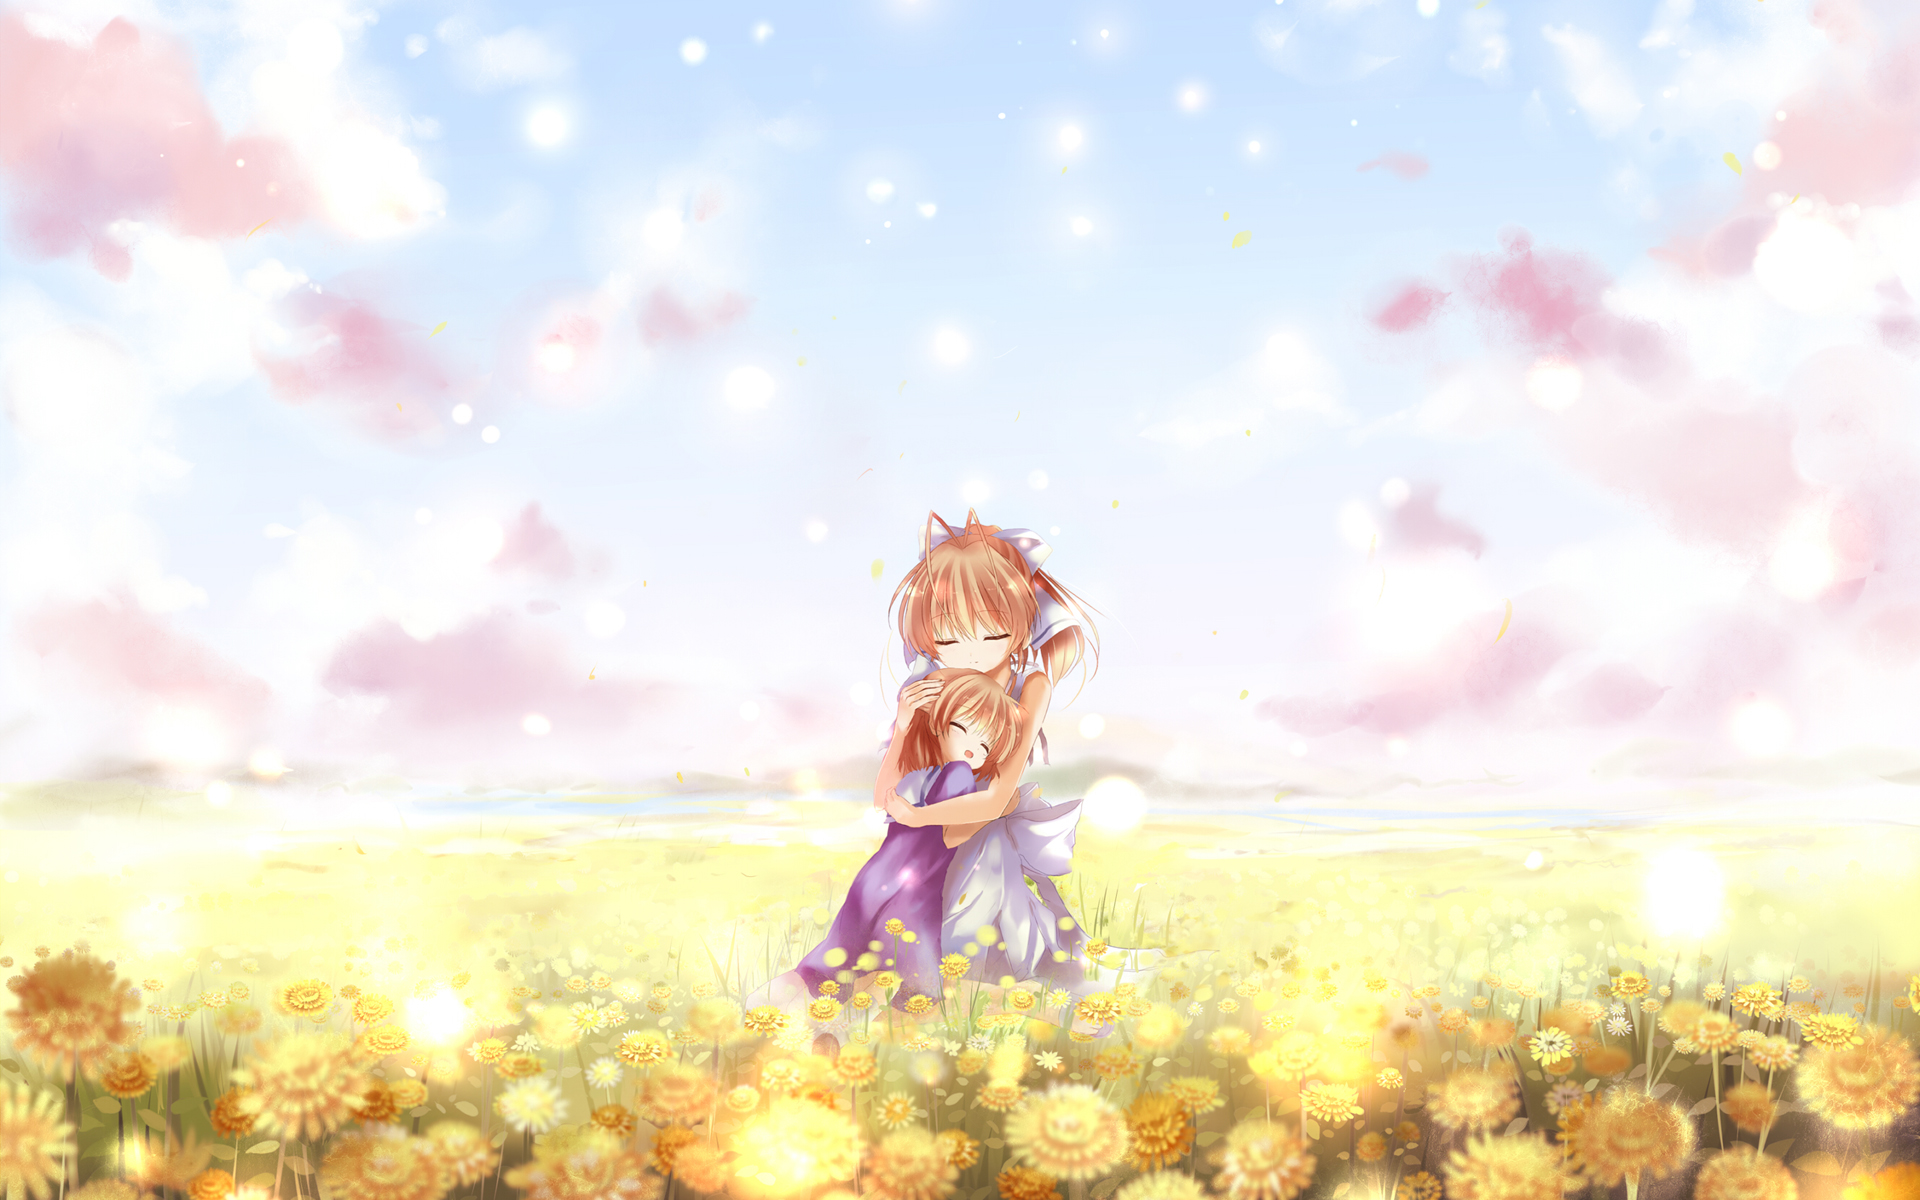 Clannad Wallpapers 3 The Null Set 1920x1200